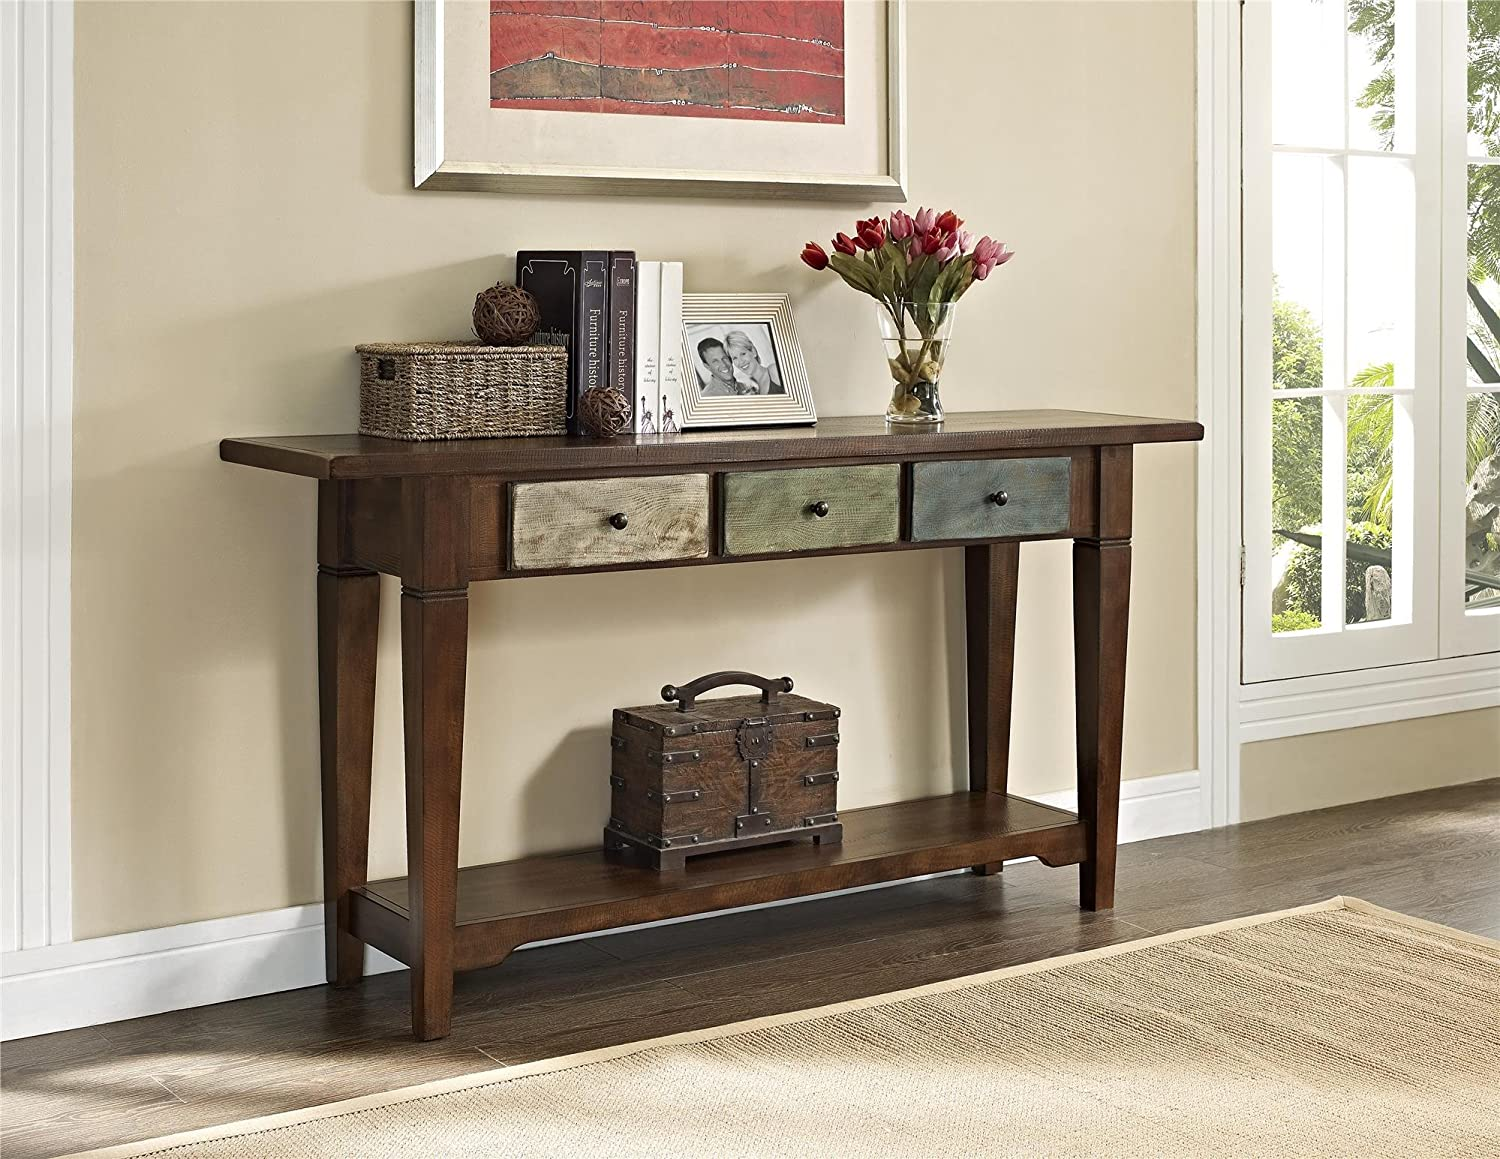 amazoncom altra sage console table with drawers rustic kitchen u0026 dining